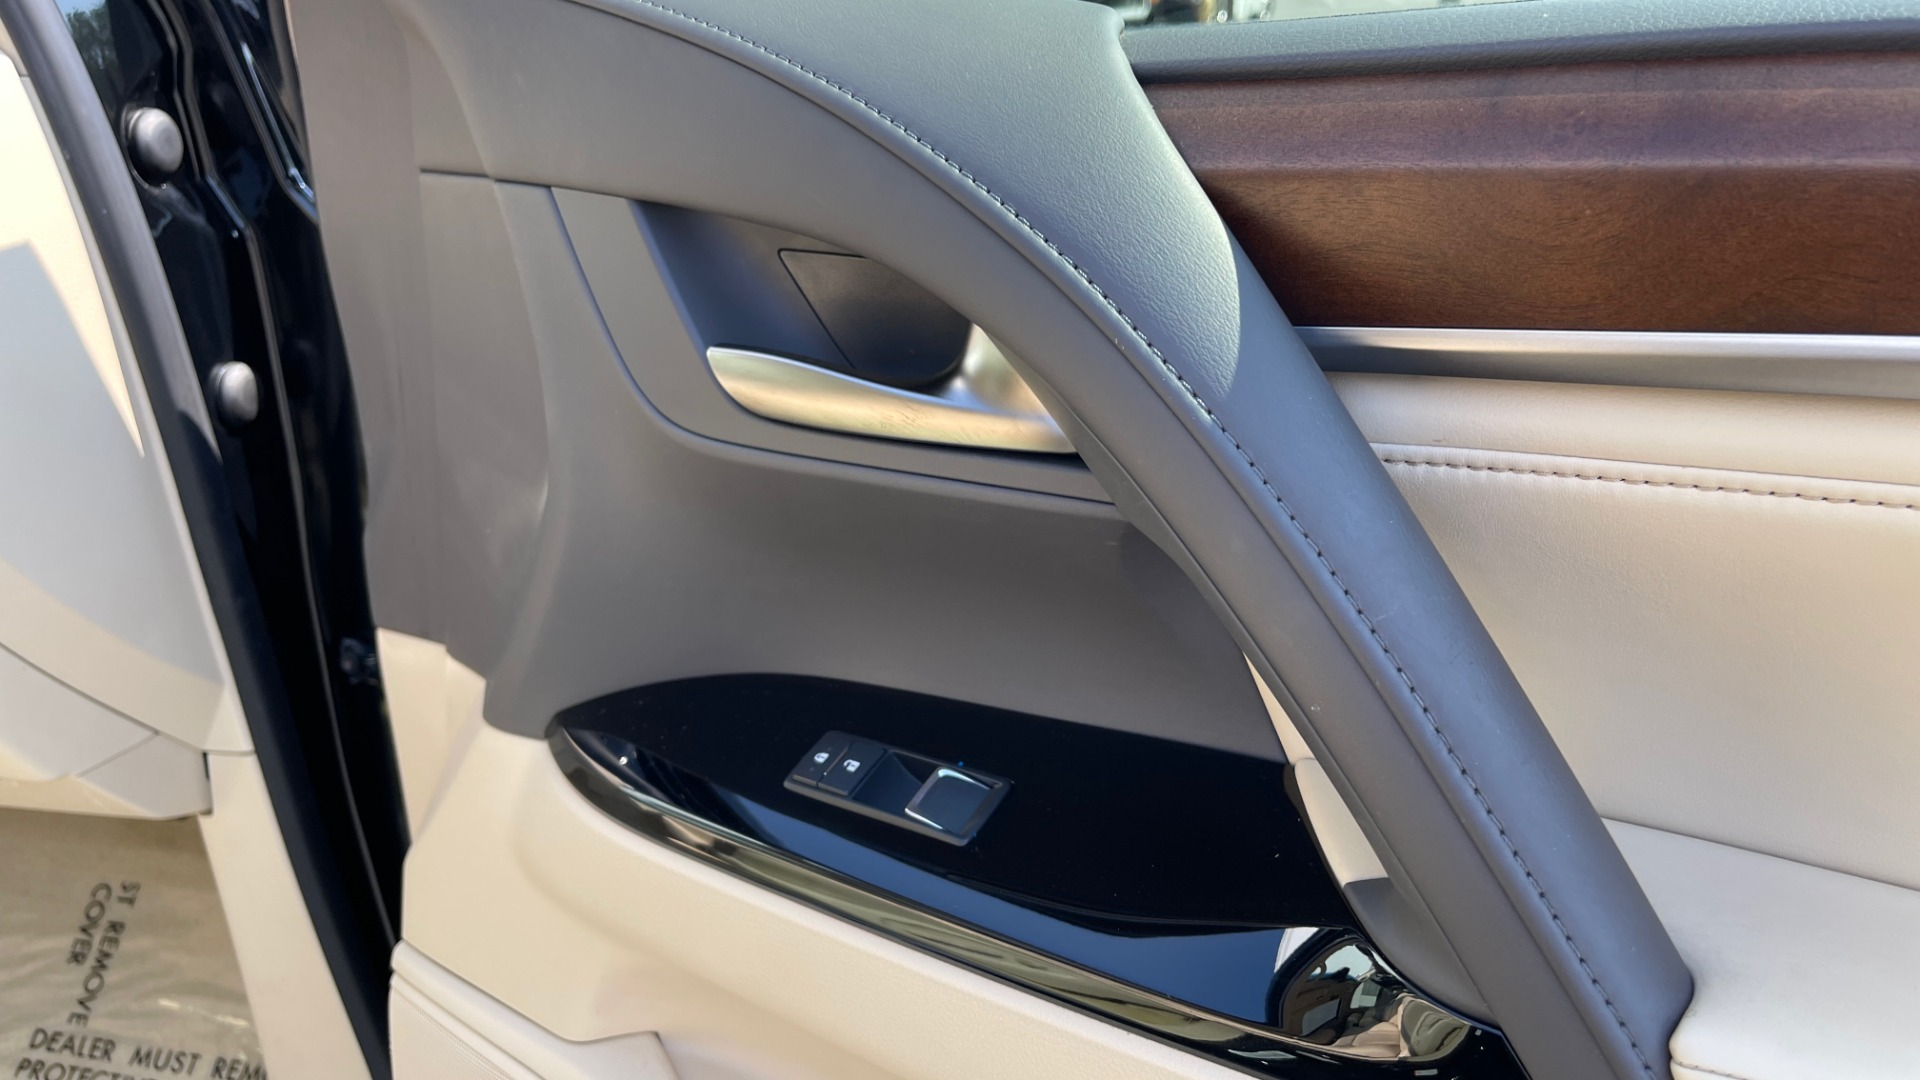 Used 2017 Lexus LX 570 LUXURY / 5.7L V8 / NAV / SUNROOF / 3-ROW / DVD / REARVIEW for sale $63,995 at Formula Imports in Charlotte NC 28227 71